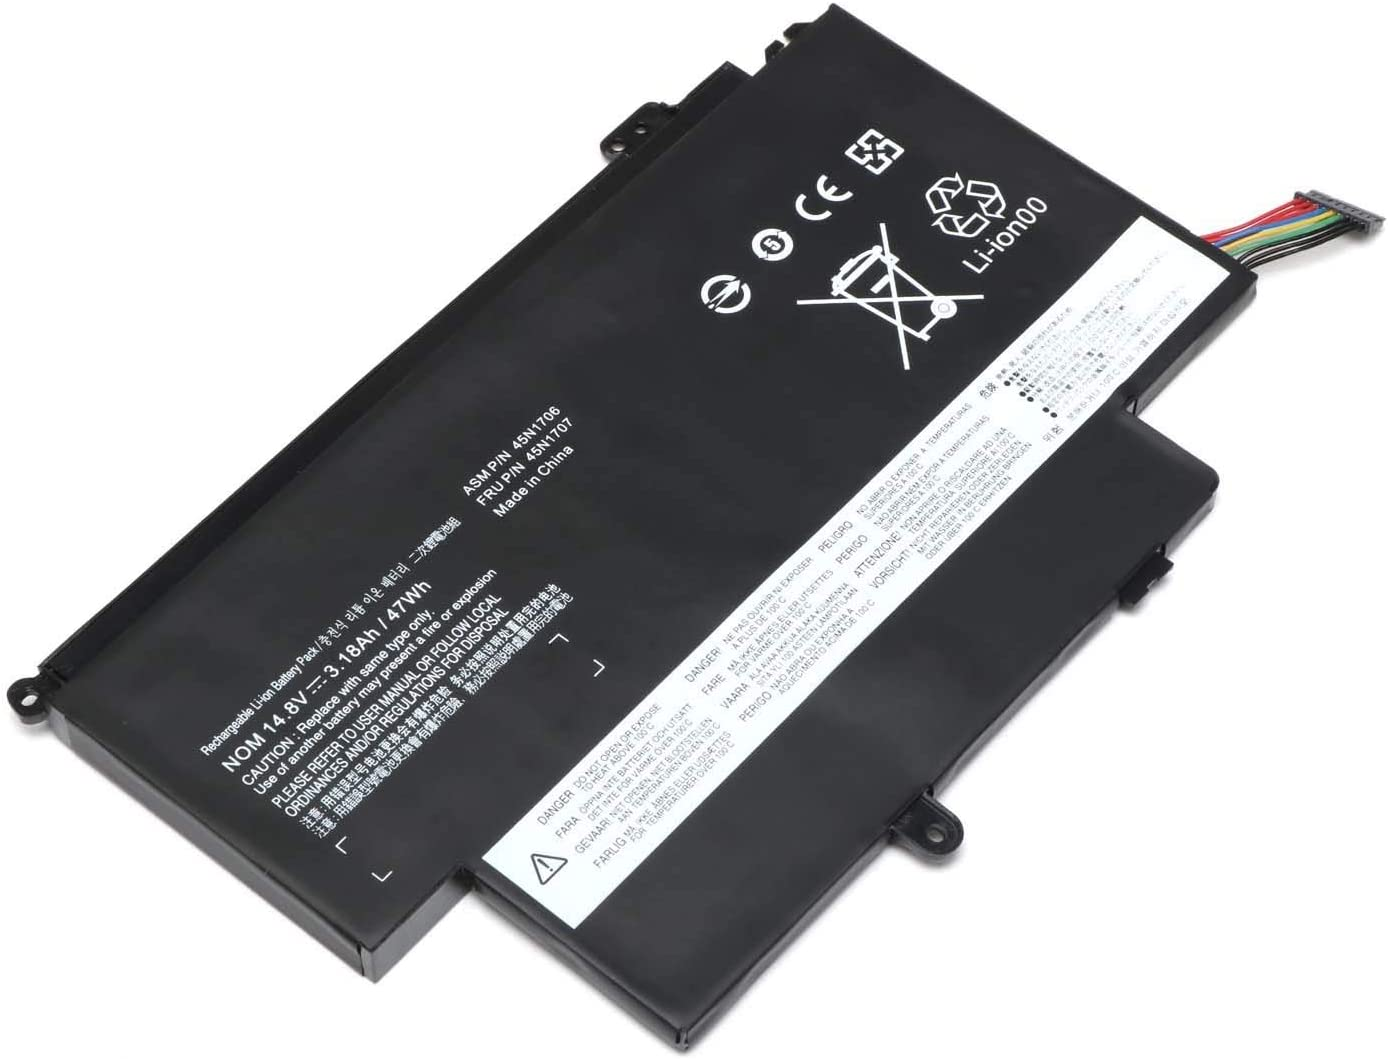 FLIW 45N1704 Replacement Battery Compatible with Lenovo ThinkPad S1 Yoga/ThinkPad Yoga 12 Series 20CD 20DL 20DK 20DL 45N1705 45N1706 45N1707 [14.8V 47Wh]